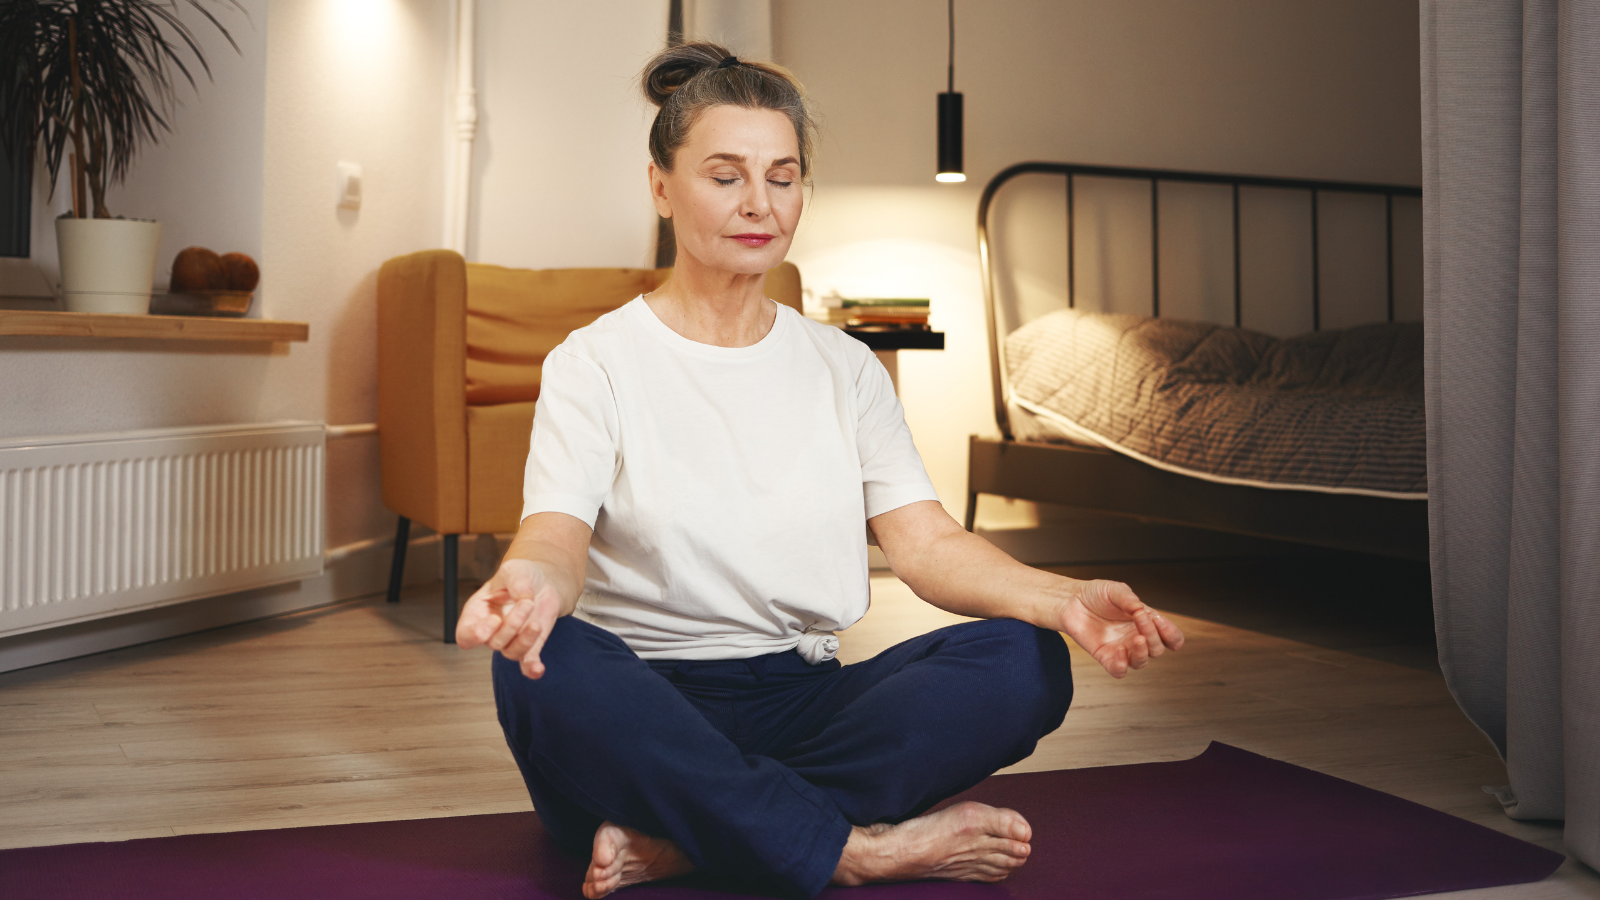 Senior woman sitting barefooted on floor at home, keeping legs crossed on mat, doing meditation after yoga practice, having calm peaceful facial expression